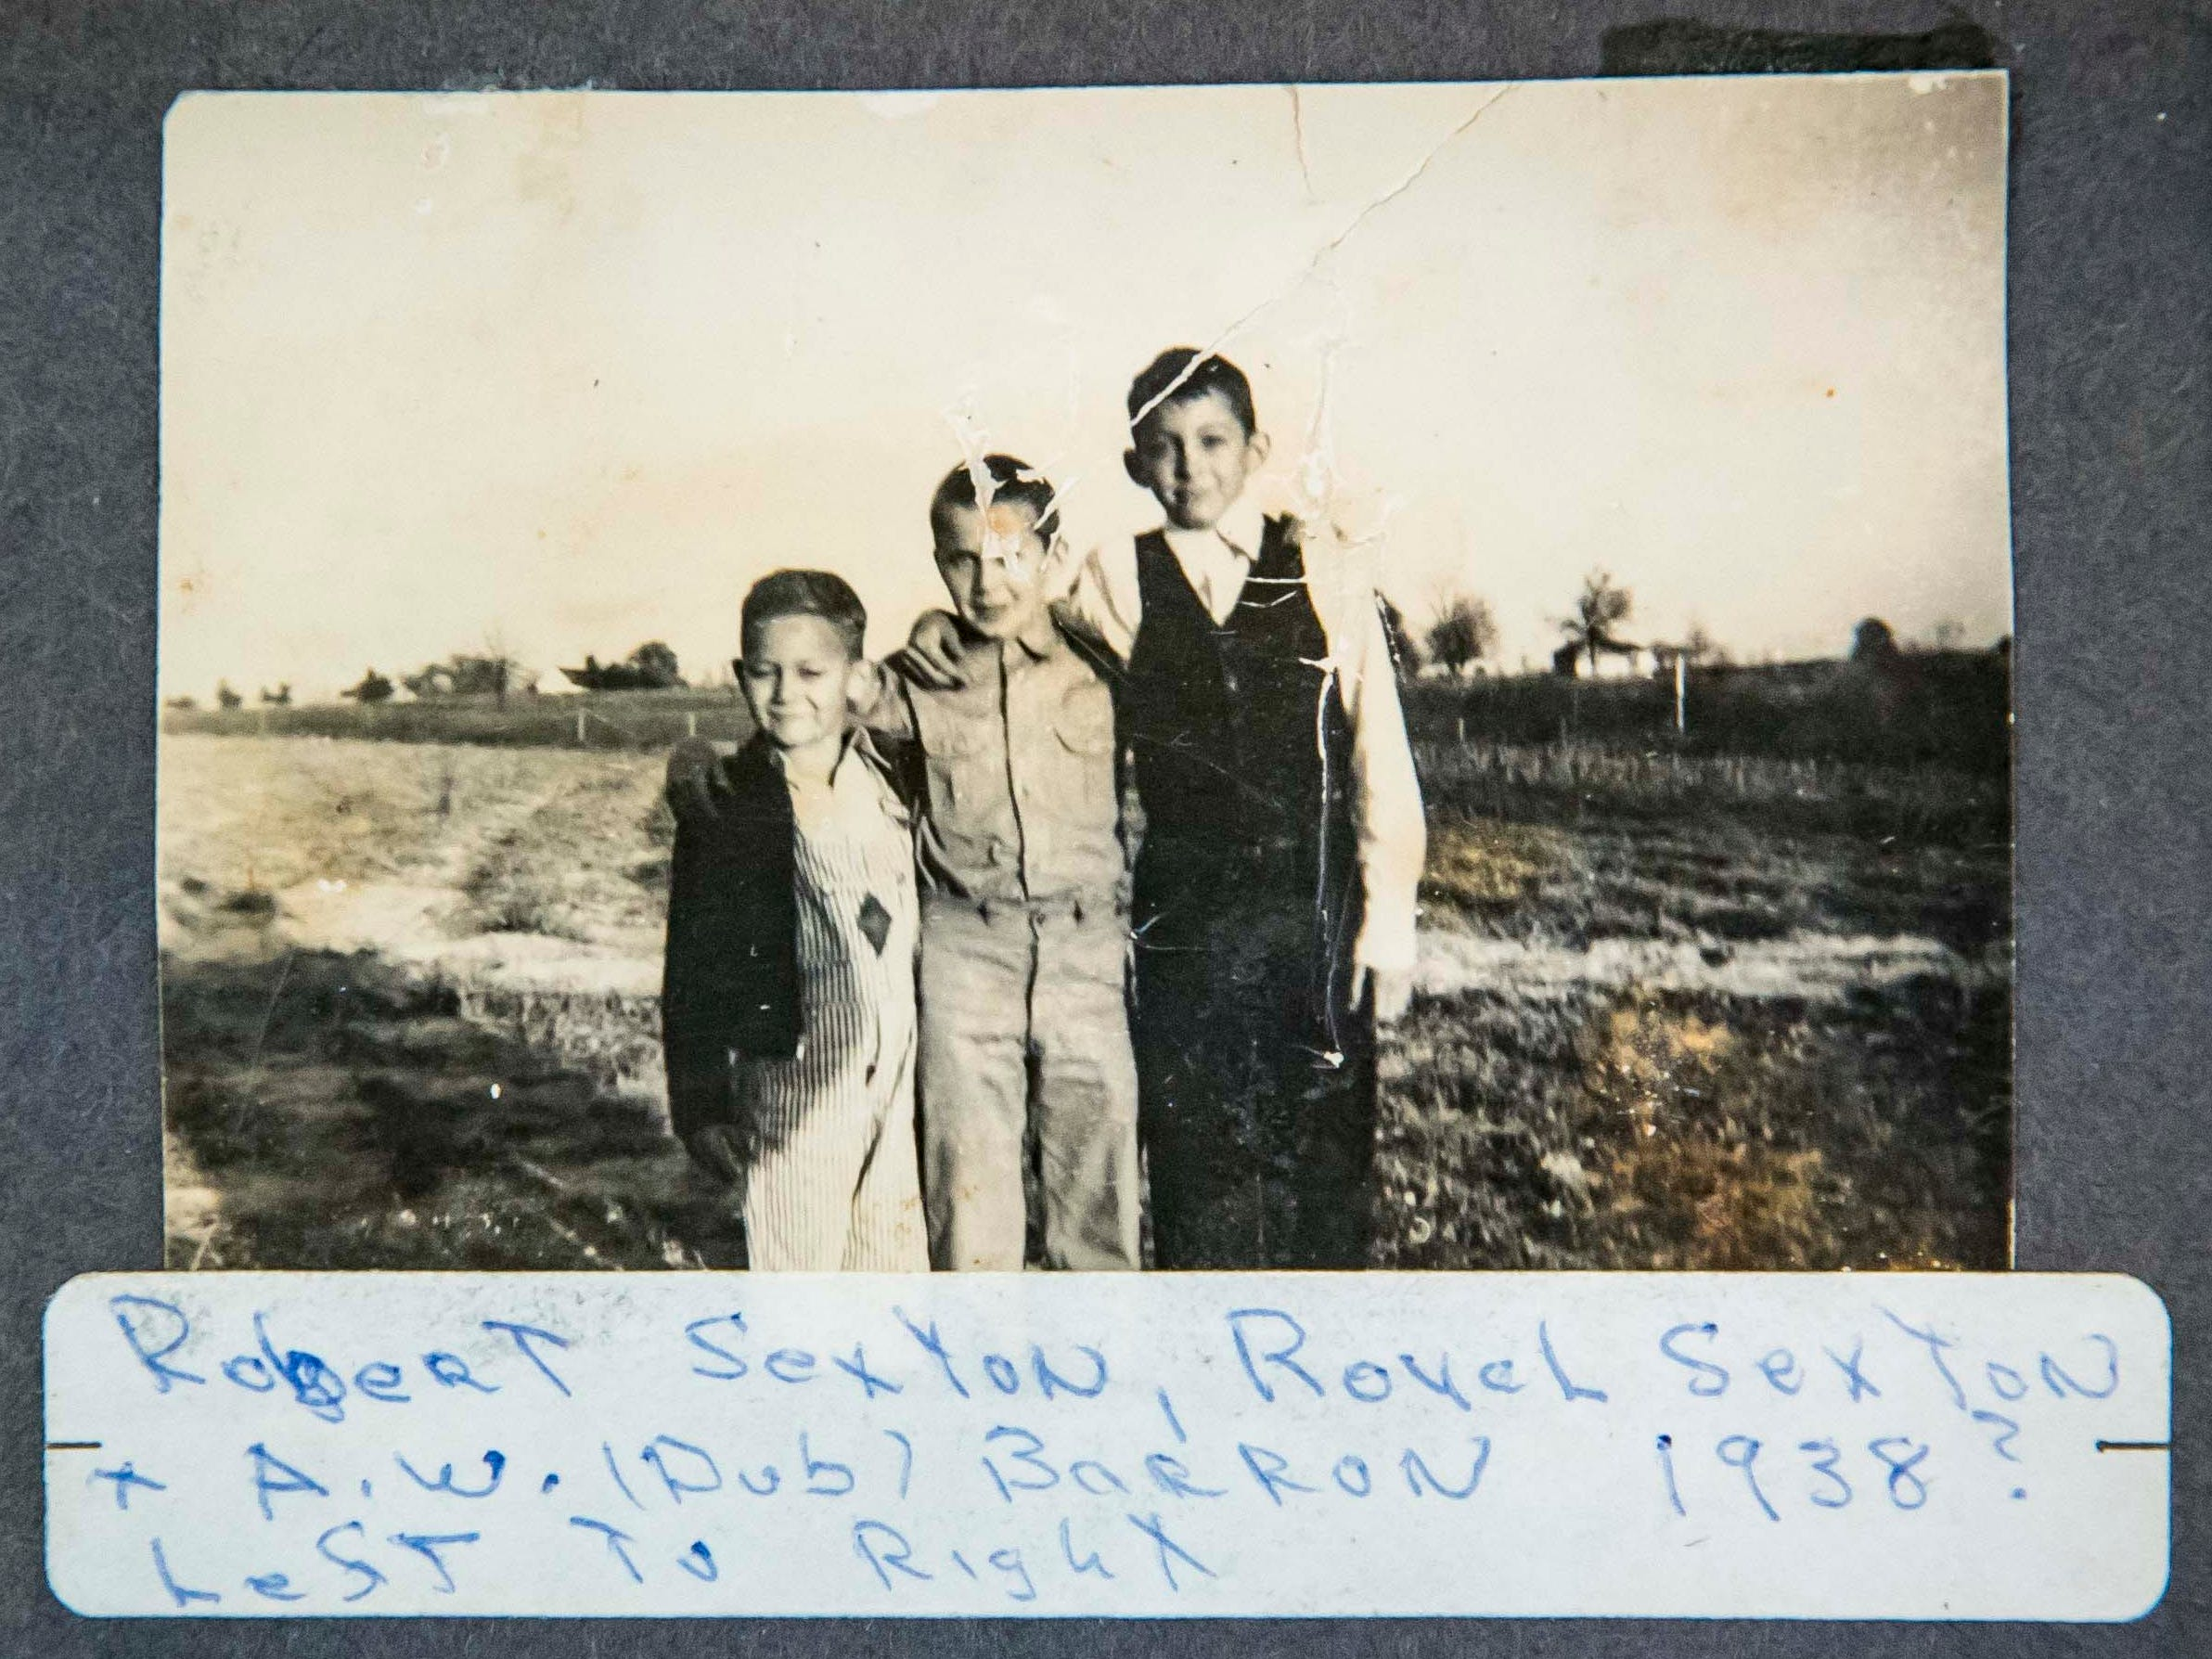 "Robert Sexton, left, Royal Sexton, and half brother A.W. ""Dub"" Barron, right, 1938."